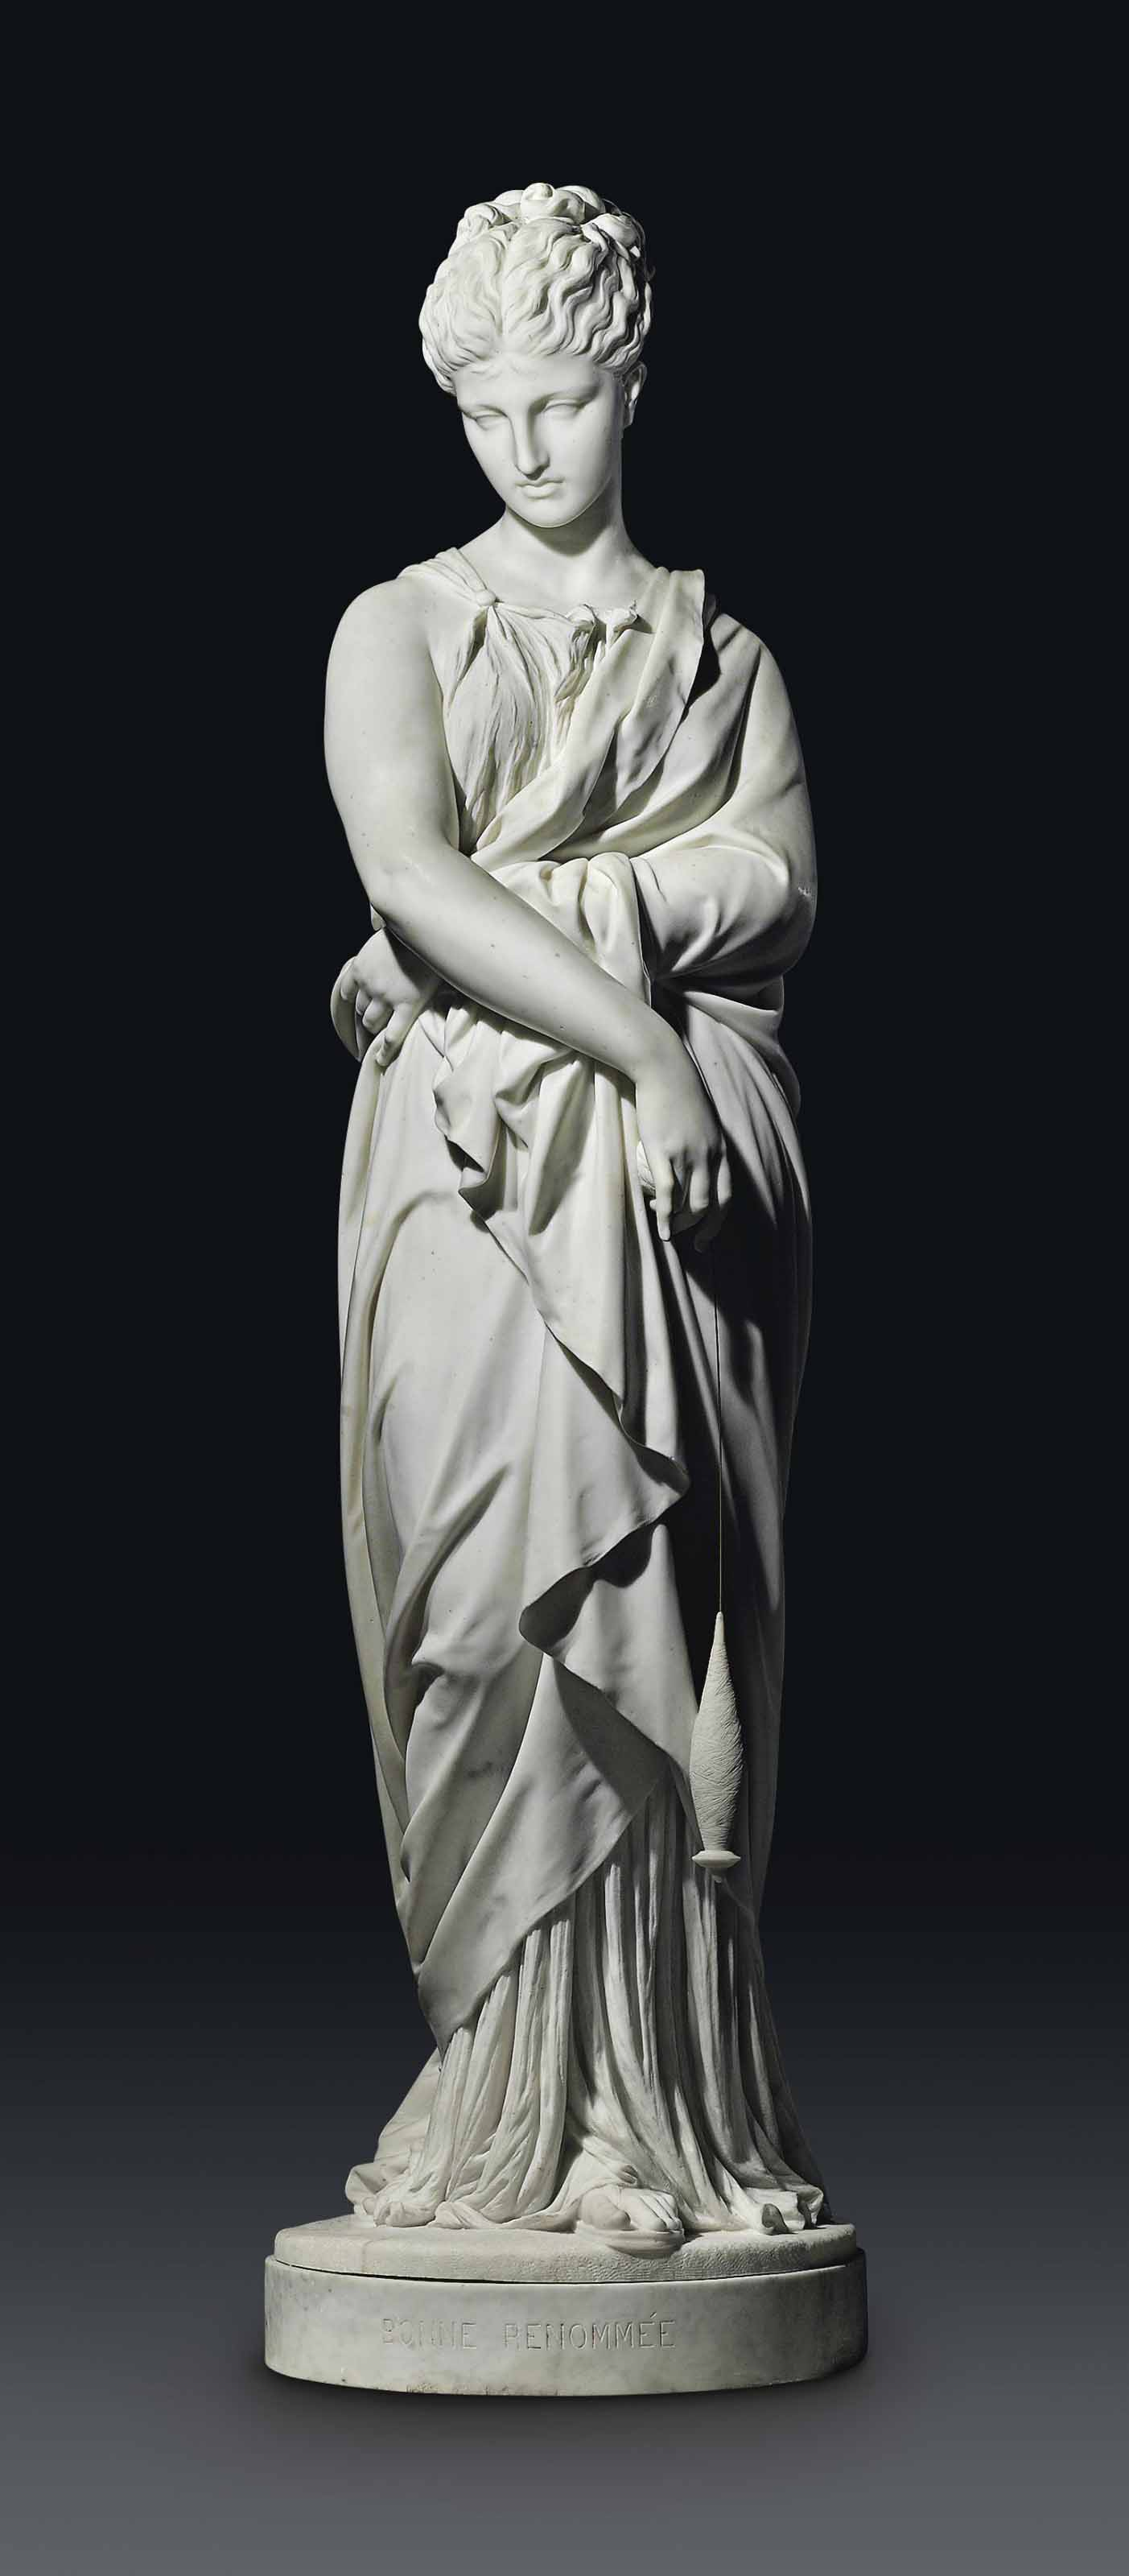 AN IMPORTANT OVER-LIFESIZE FRENCH MARBLE FIGURE OF PENELOPE, ENTITLED 'BONNE RENOMMEE'